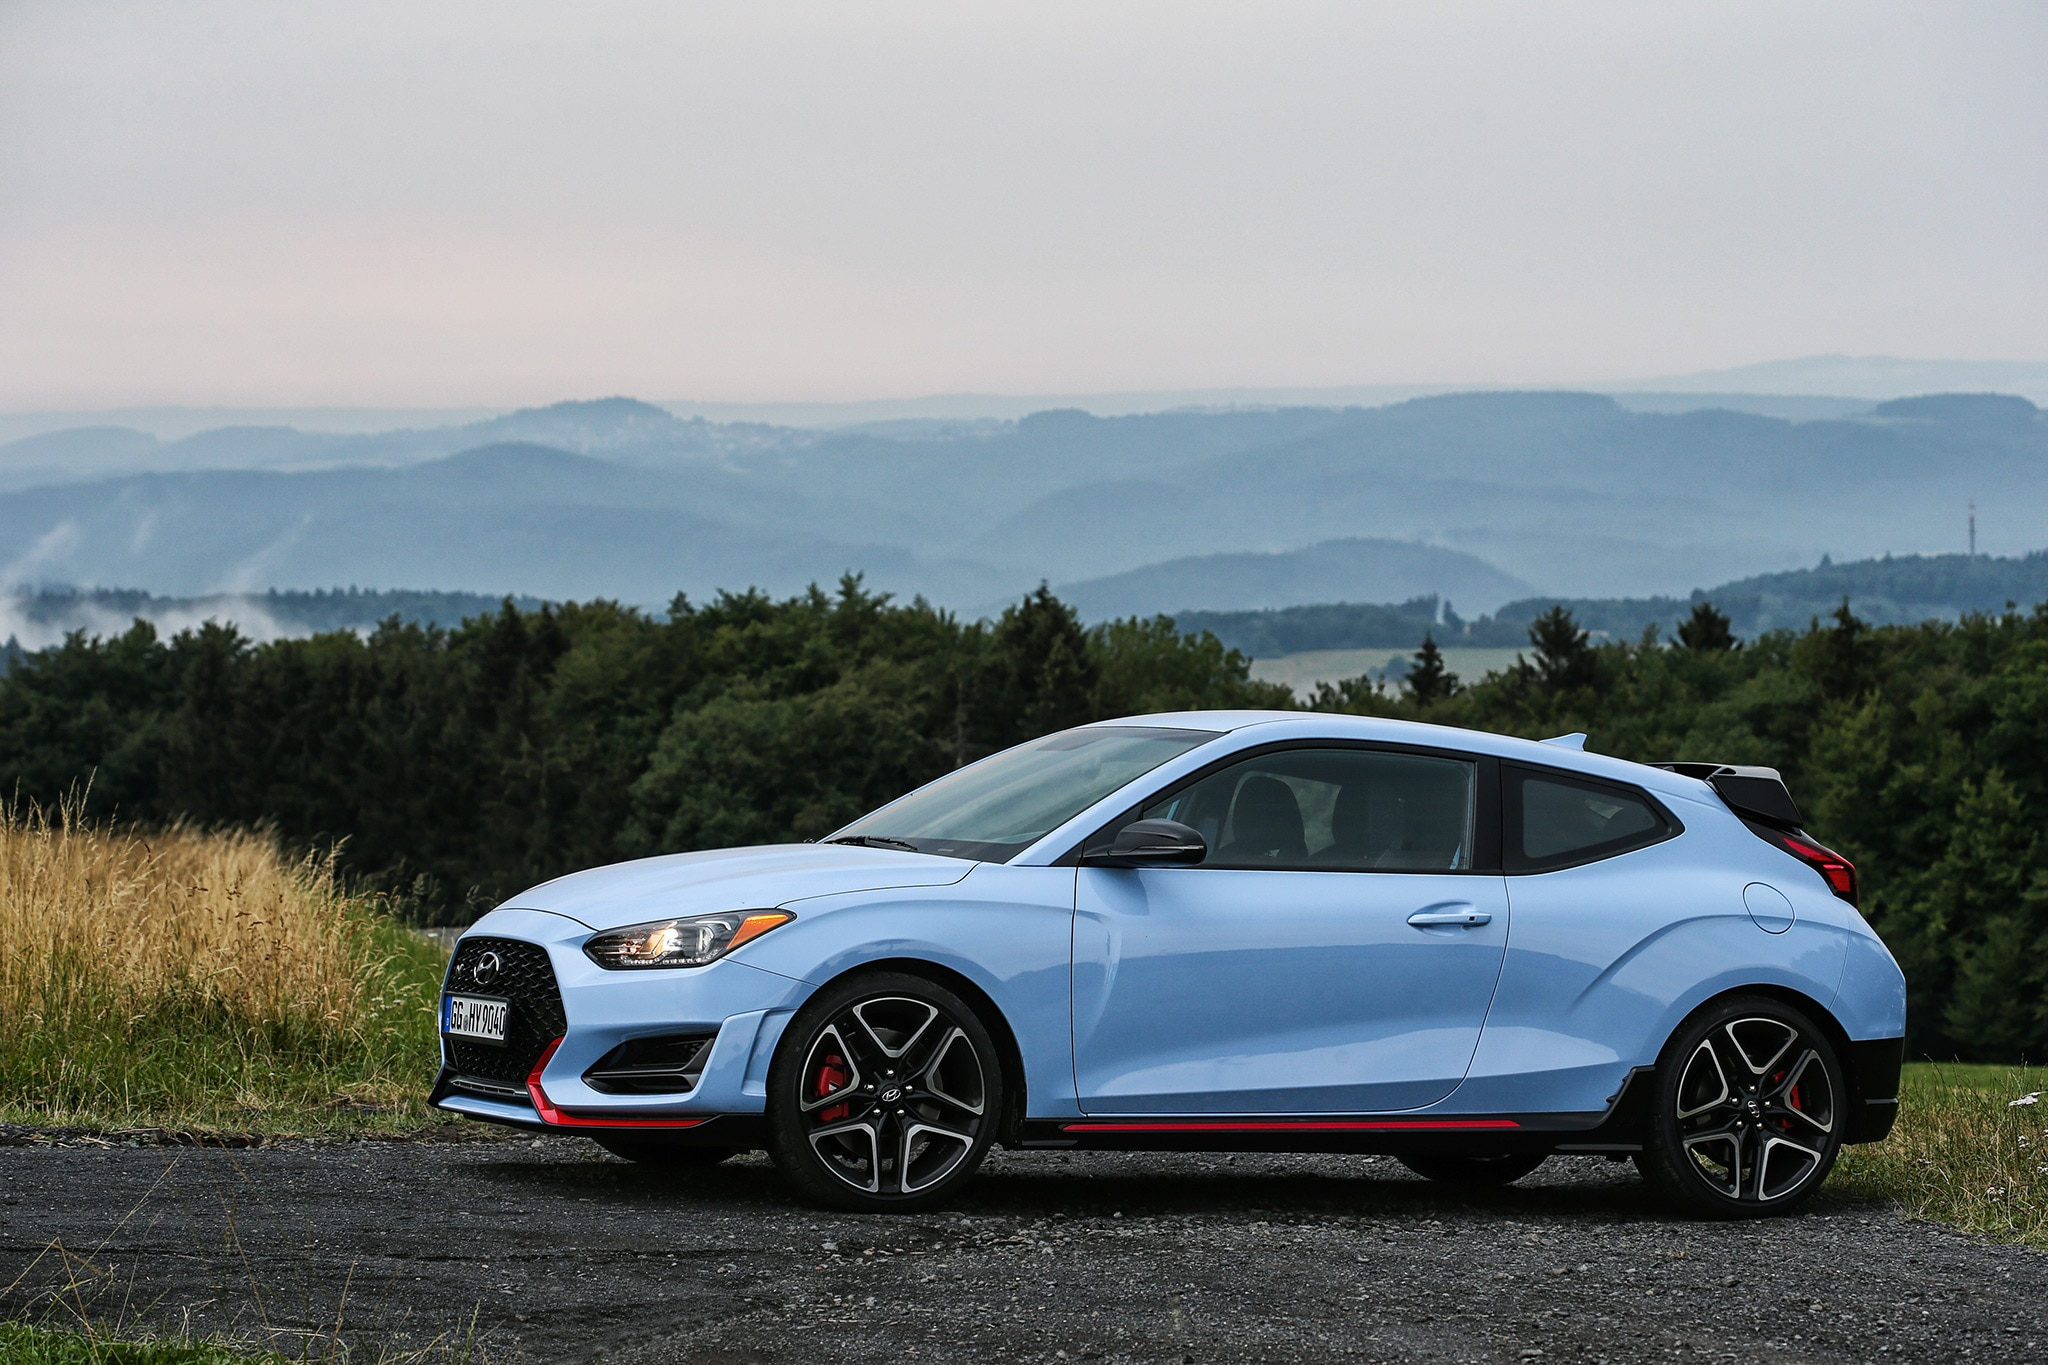 2019 Hyundai Veloster N First Drive Review | Automobile ...